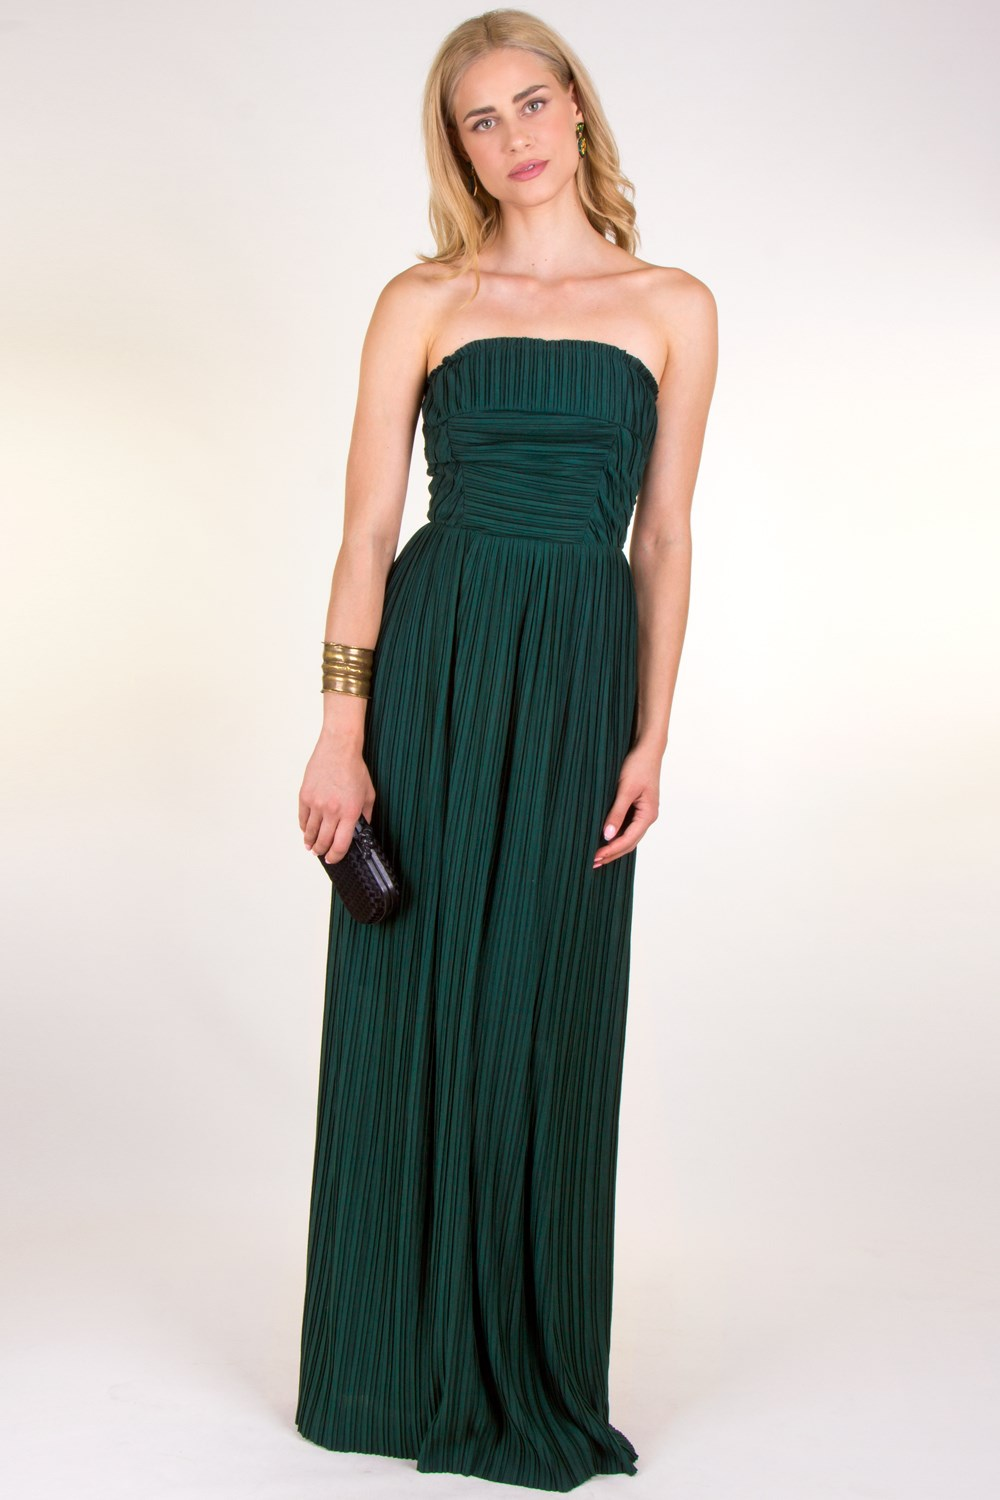 Forest Green Strapless Maxi Dress, Maxi Dresses, Dresses, Clothing ...